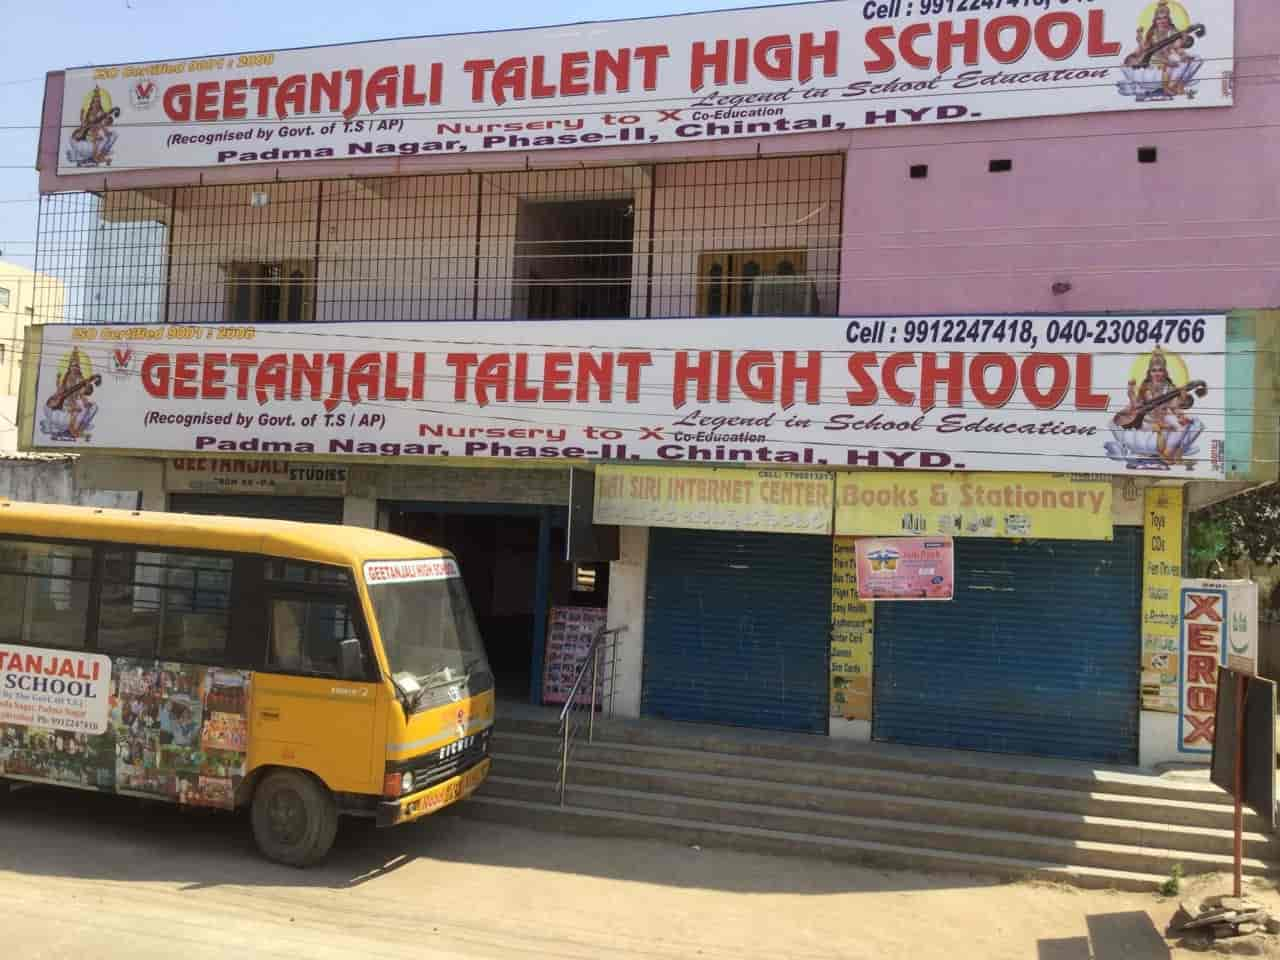 Fichet Sa Geetanjali Talent High School Photos Chintal Hyderabad Pictures